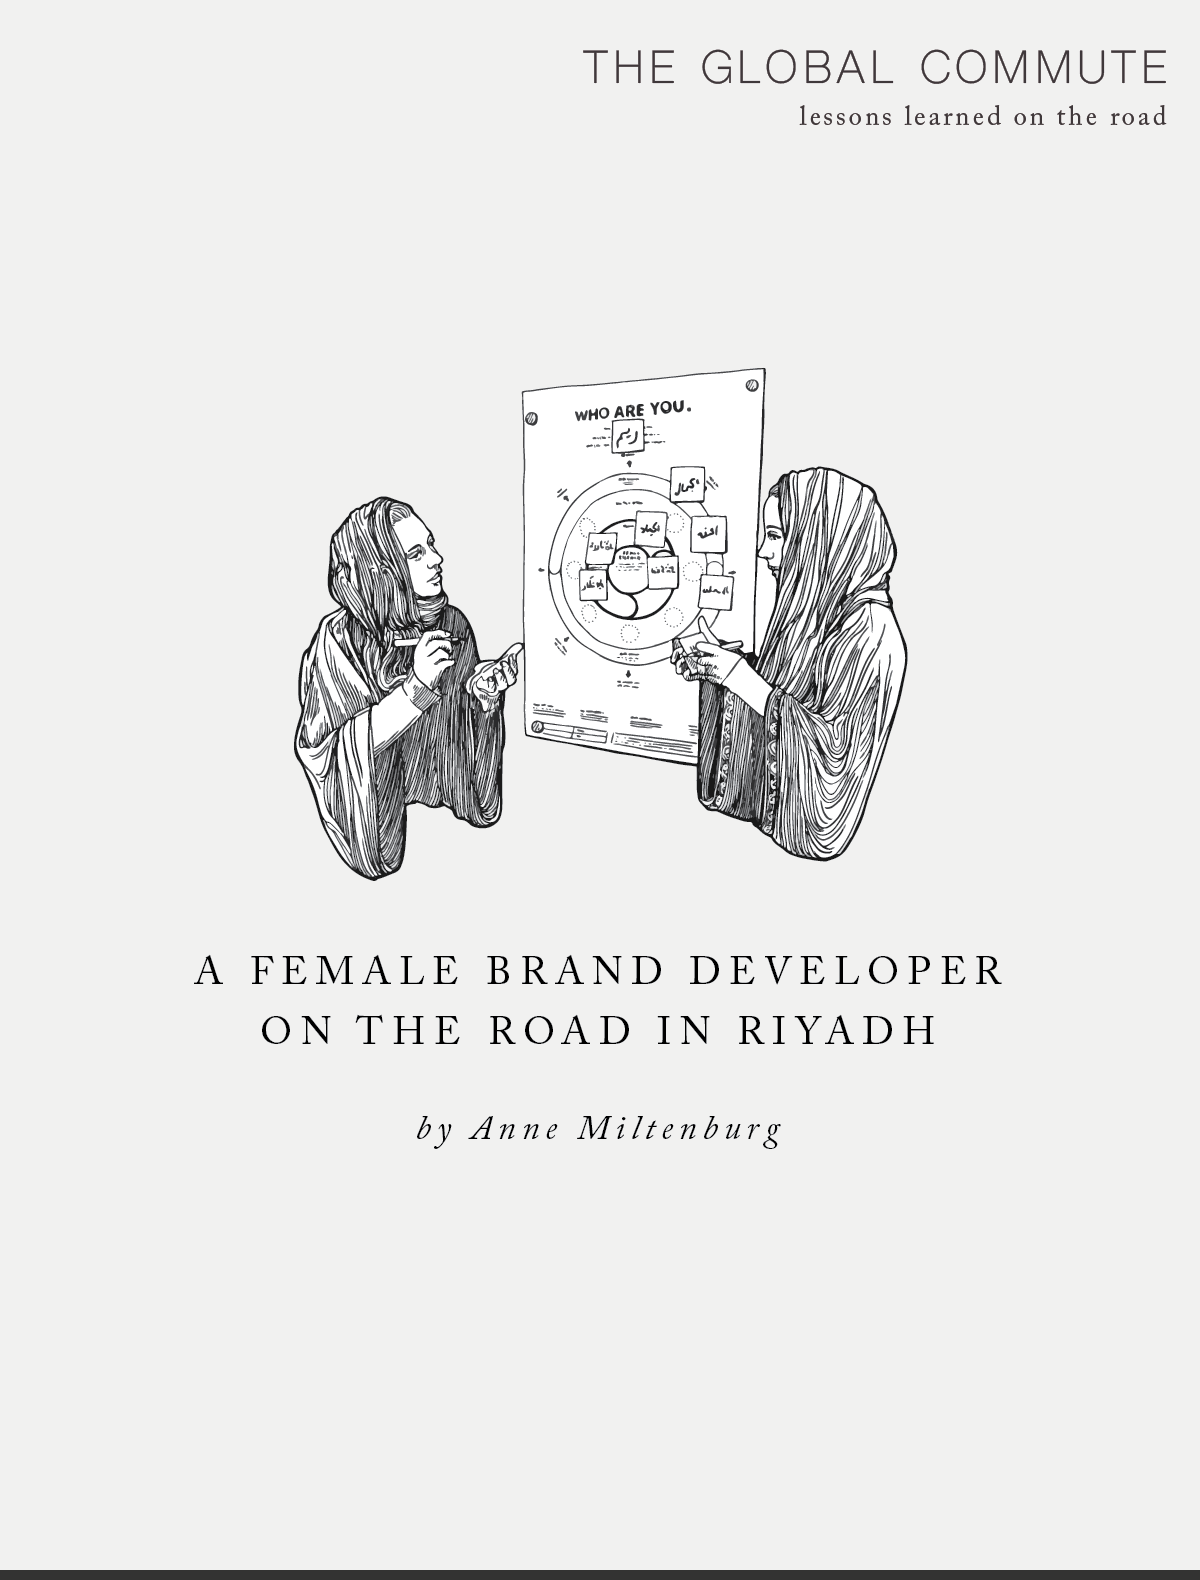 The Global Commute: A Female Brand Developer on the Road